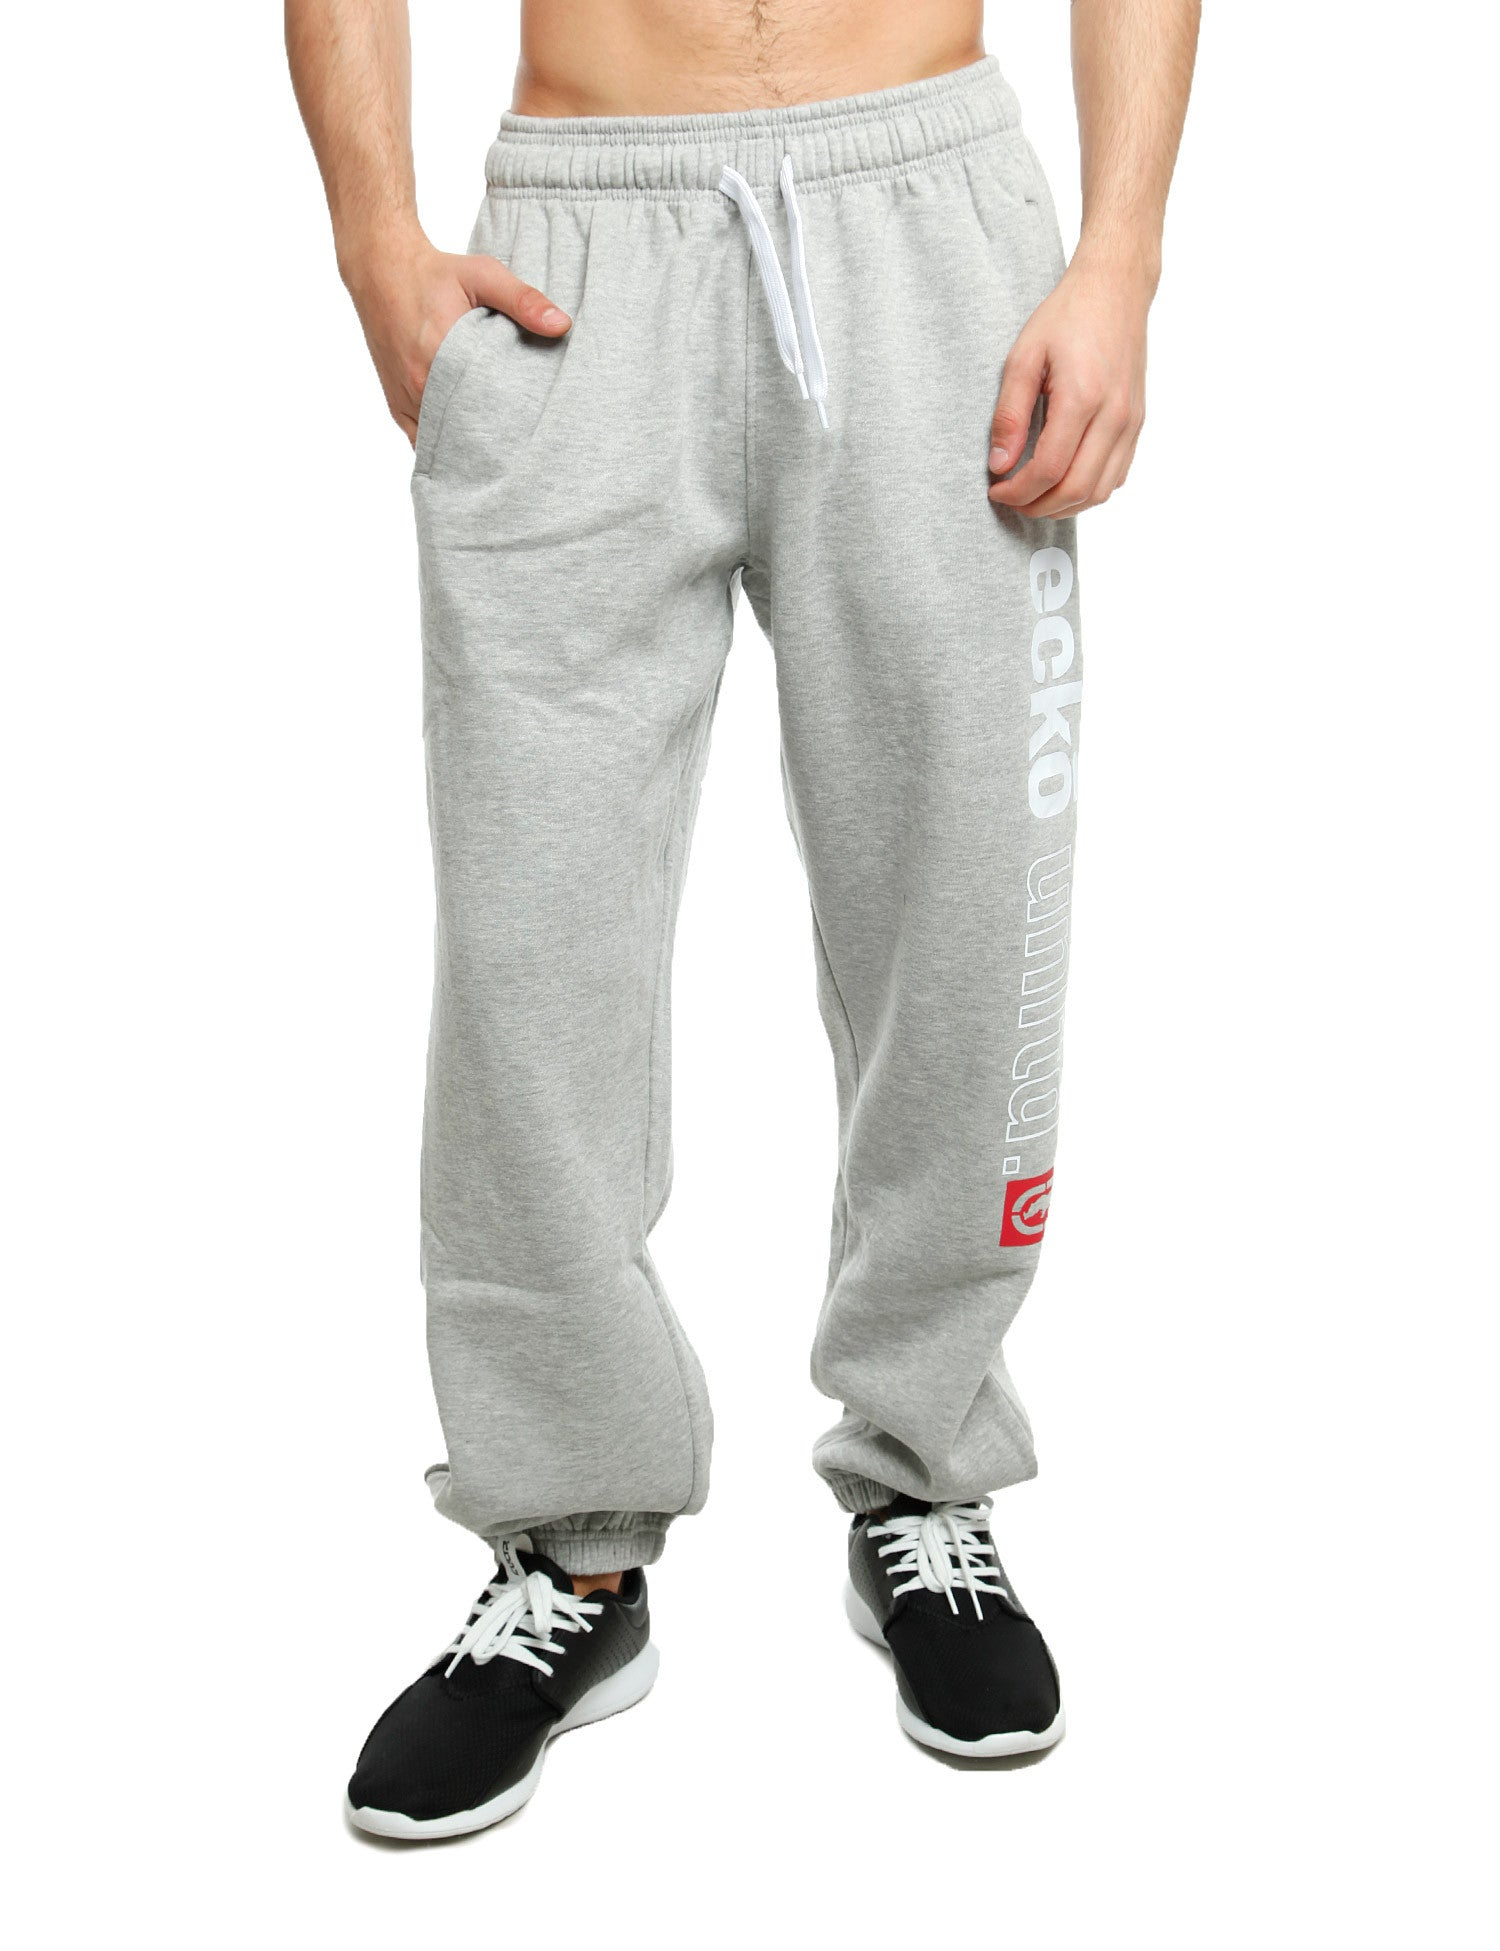 Image of Ecko Sweatpants Ilford Grey